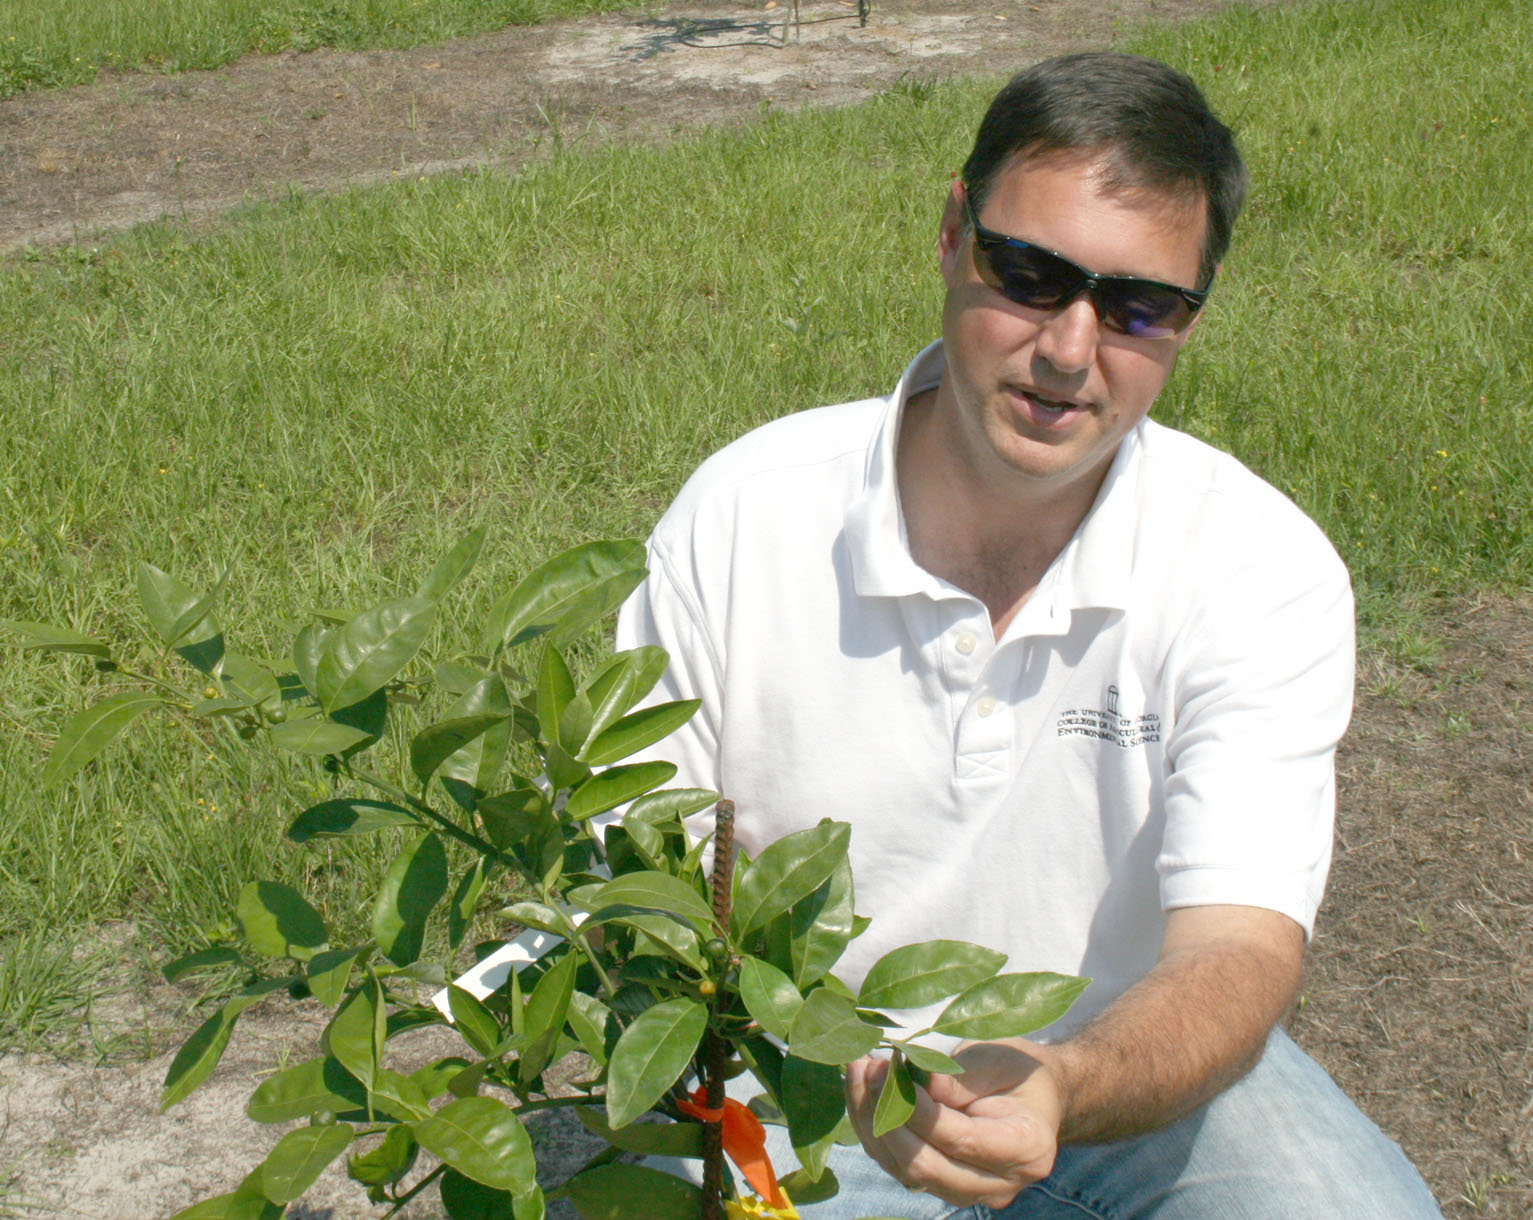 Lowndes County Extension Coordinator Jacob Price examines a satsuma tree in Lowndes County in 2015.